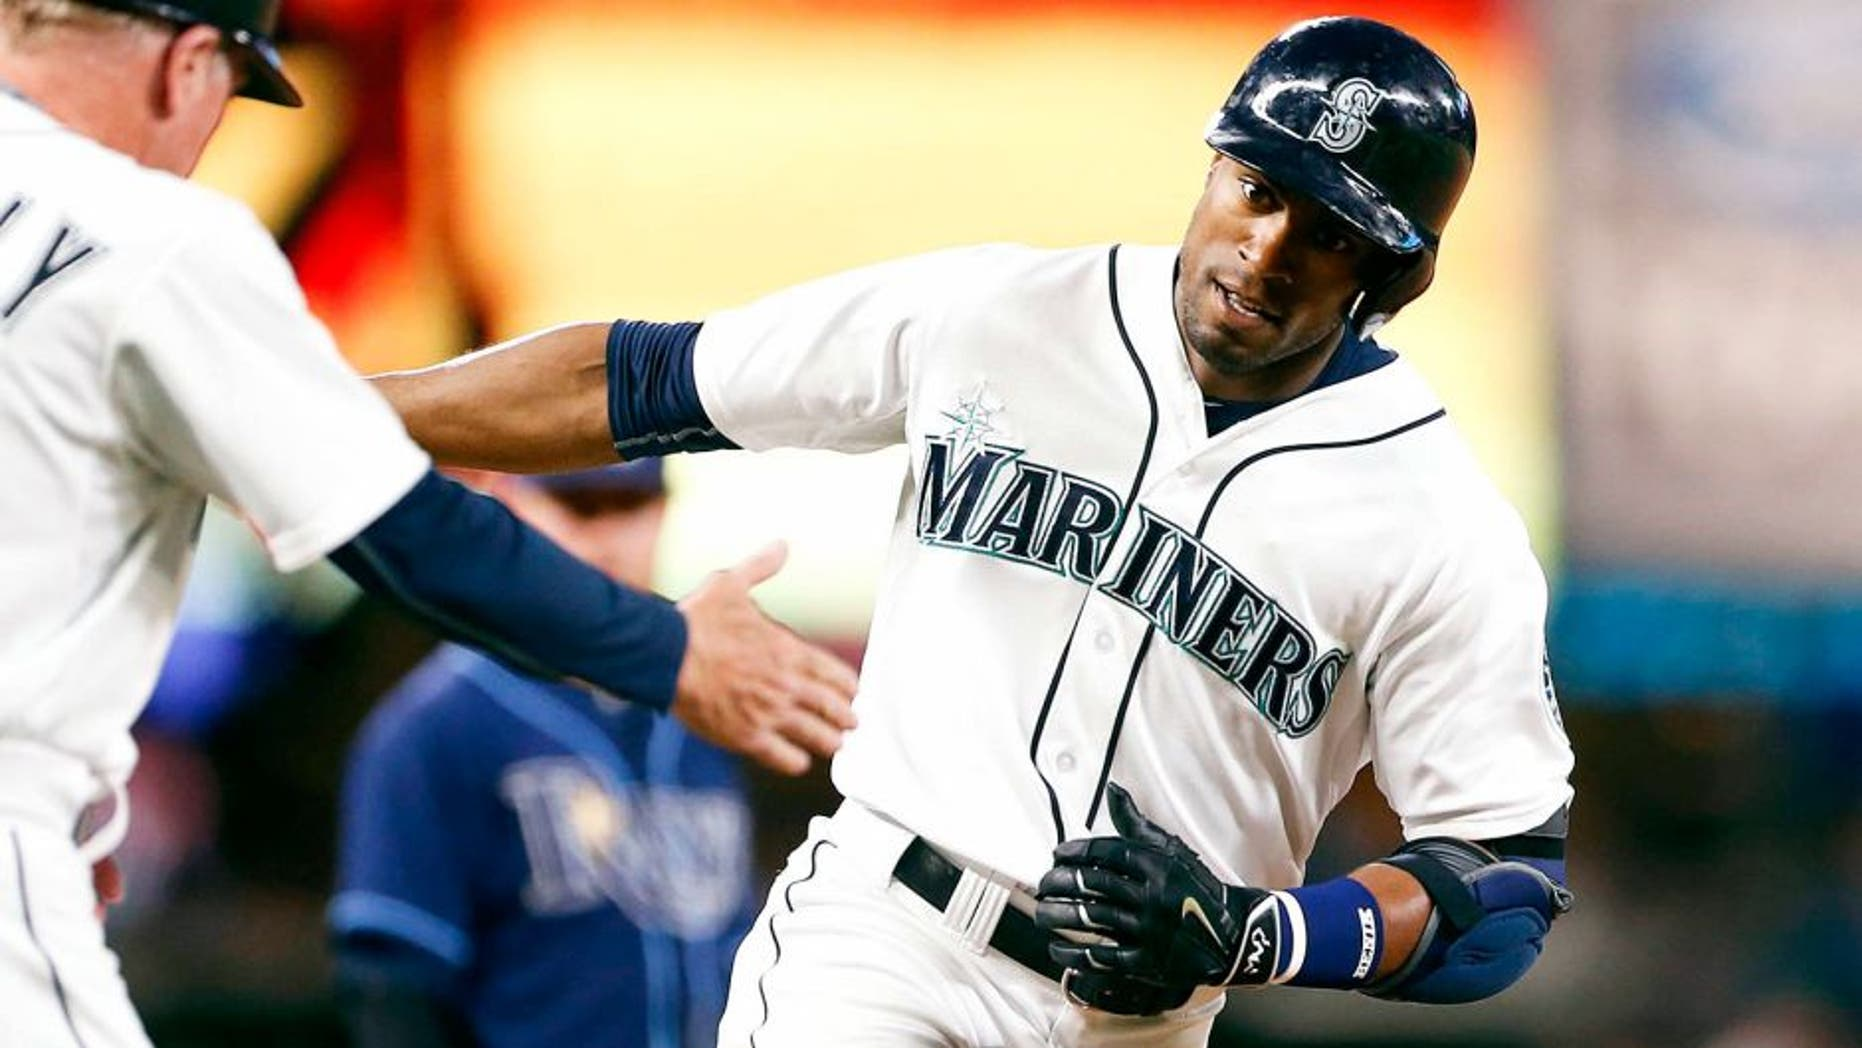 Jun 6, 2015; Seattle, WA, USA; Seattle Mariners center fielder Austin Jackson (16) runs around the bases after hitting a solo-homer against the Tampa Bay Rays during the eighth inning at Safeco Field. Mandatory Credit: Jennifer Buchanan-USA TODAY Sports